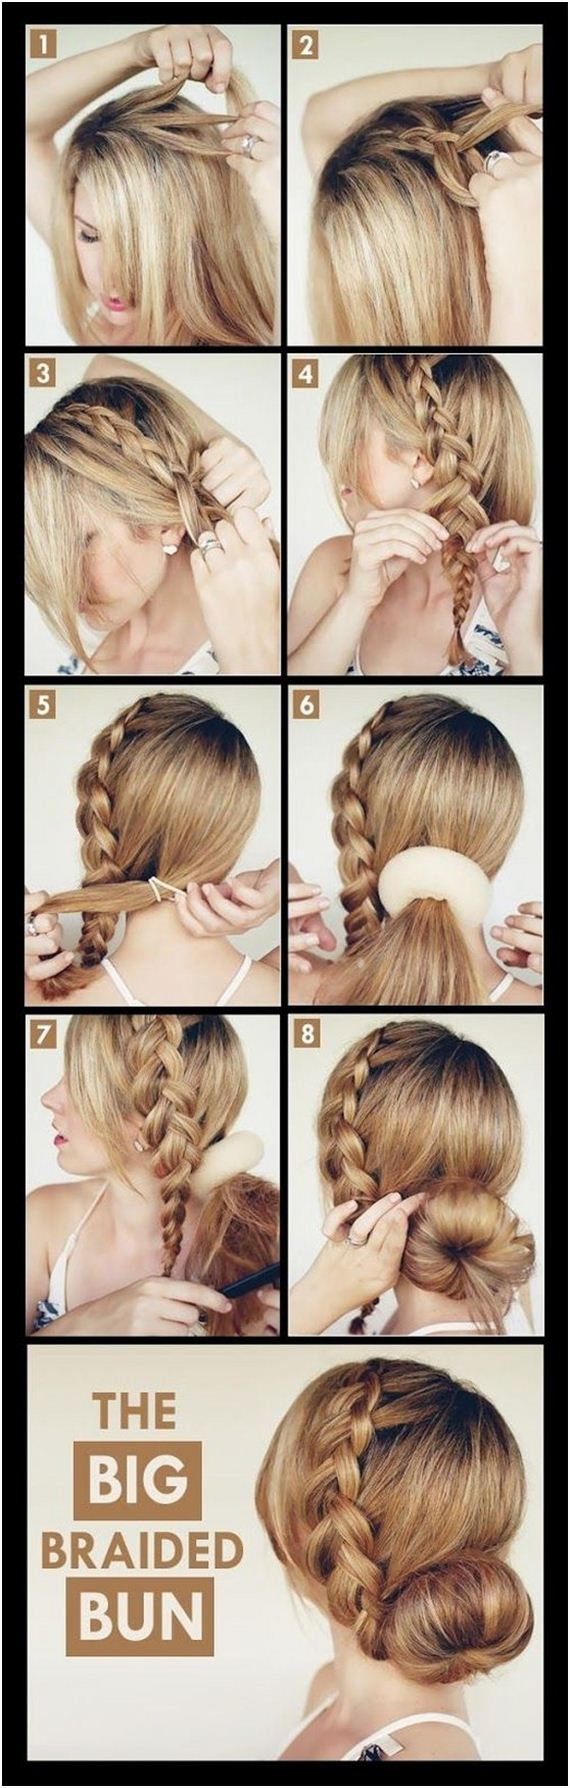 03-Braided-Updo-Hairstyles